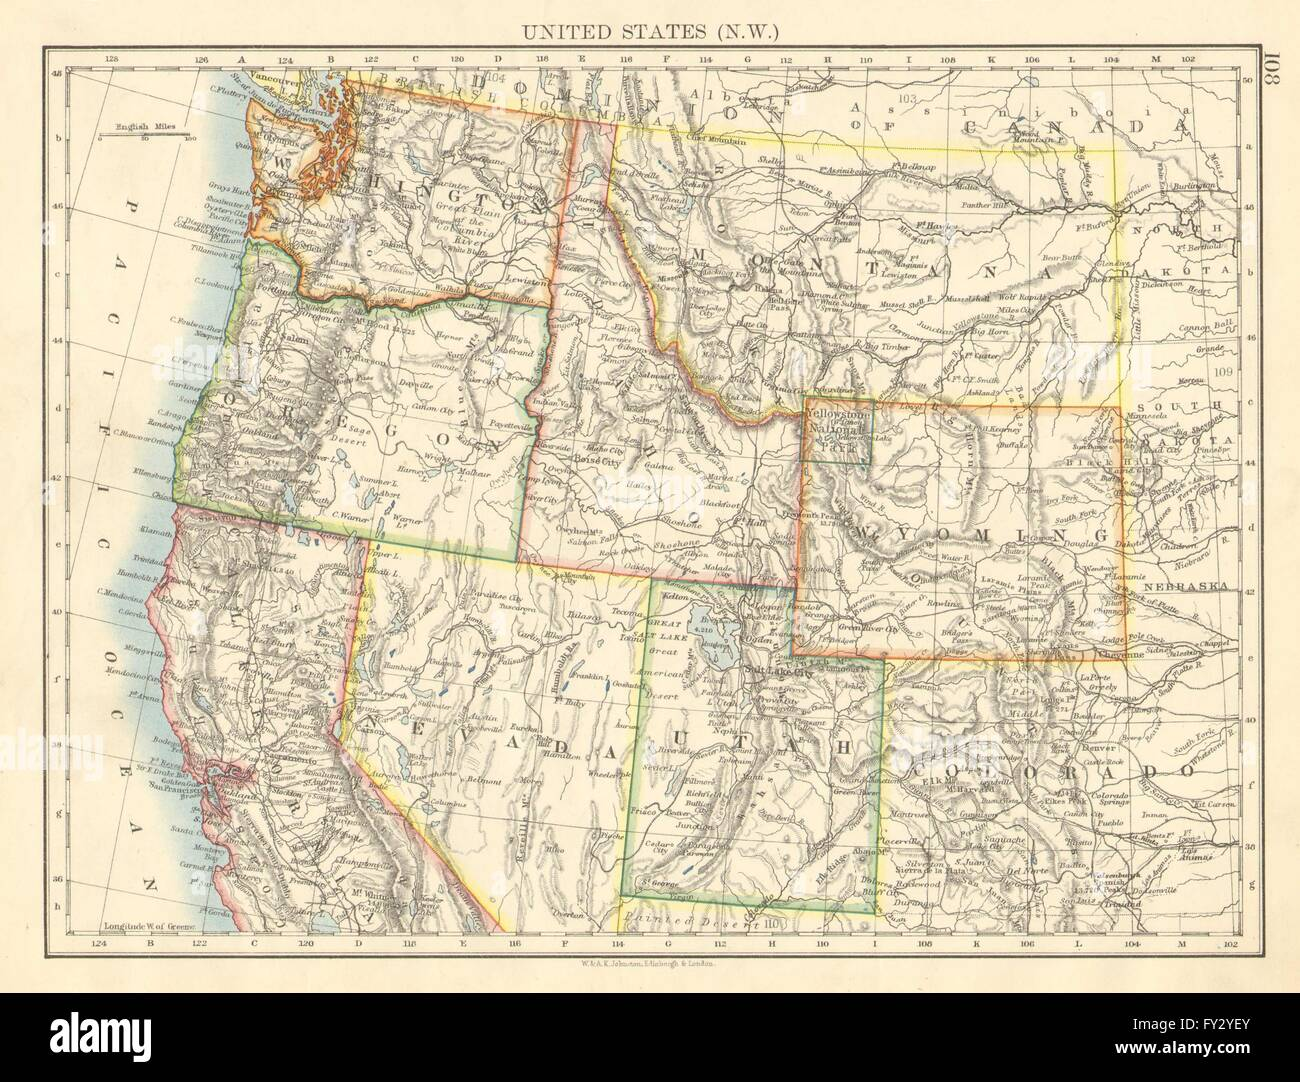 Usa North West Washington Oregon Id Mt Wy Utah Nevada Cajohnston – Map Usa North West